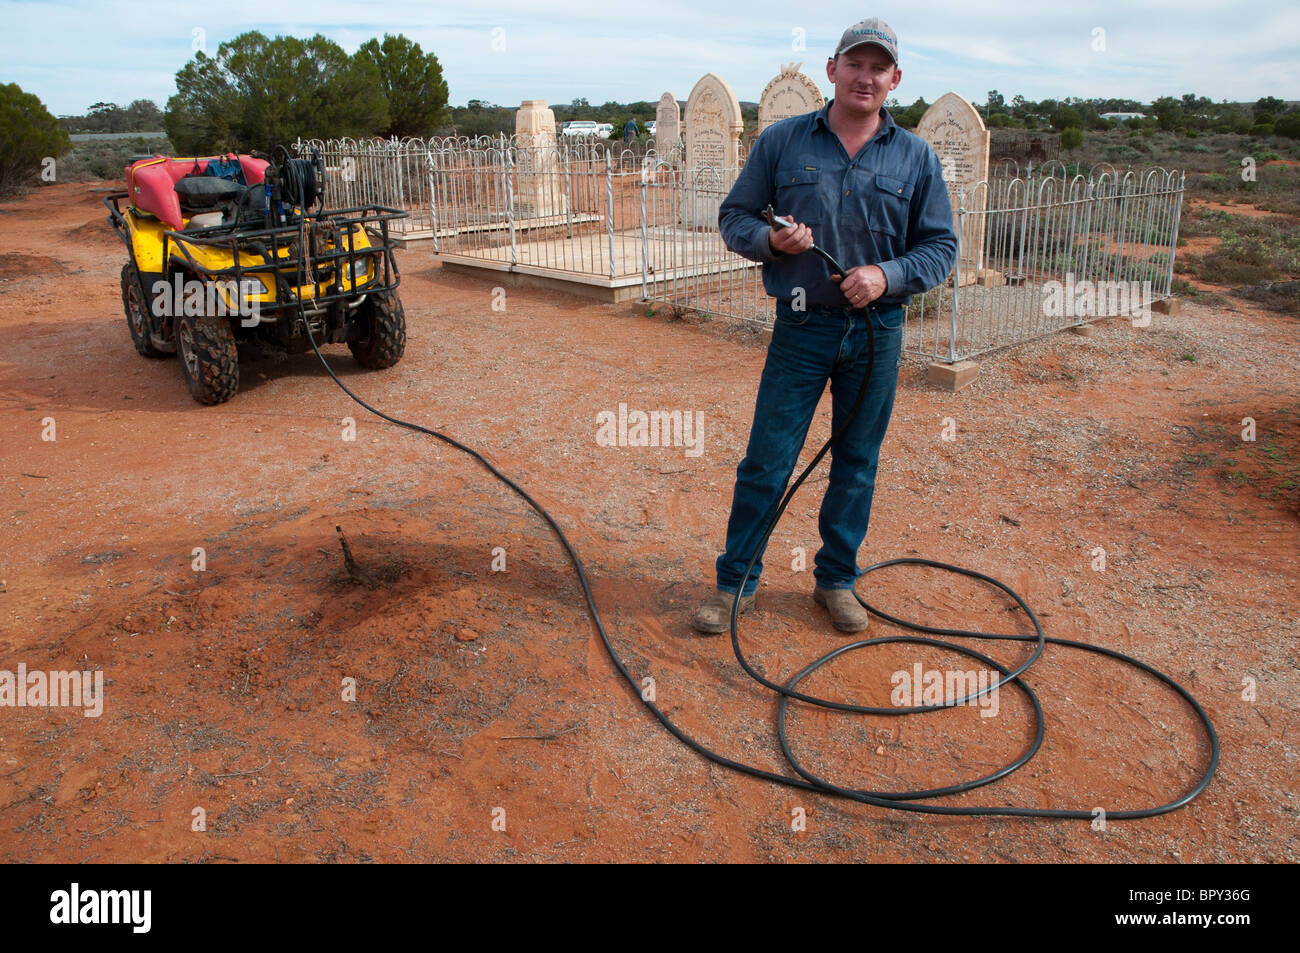 Herbicide sprayer in the historical cemetery at Silverton outside Broken Hill in outback New South Wales - Stock Image